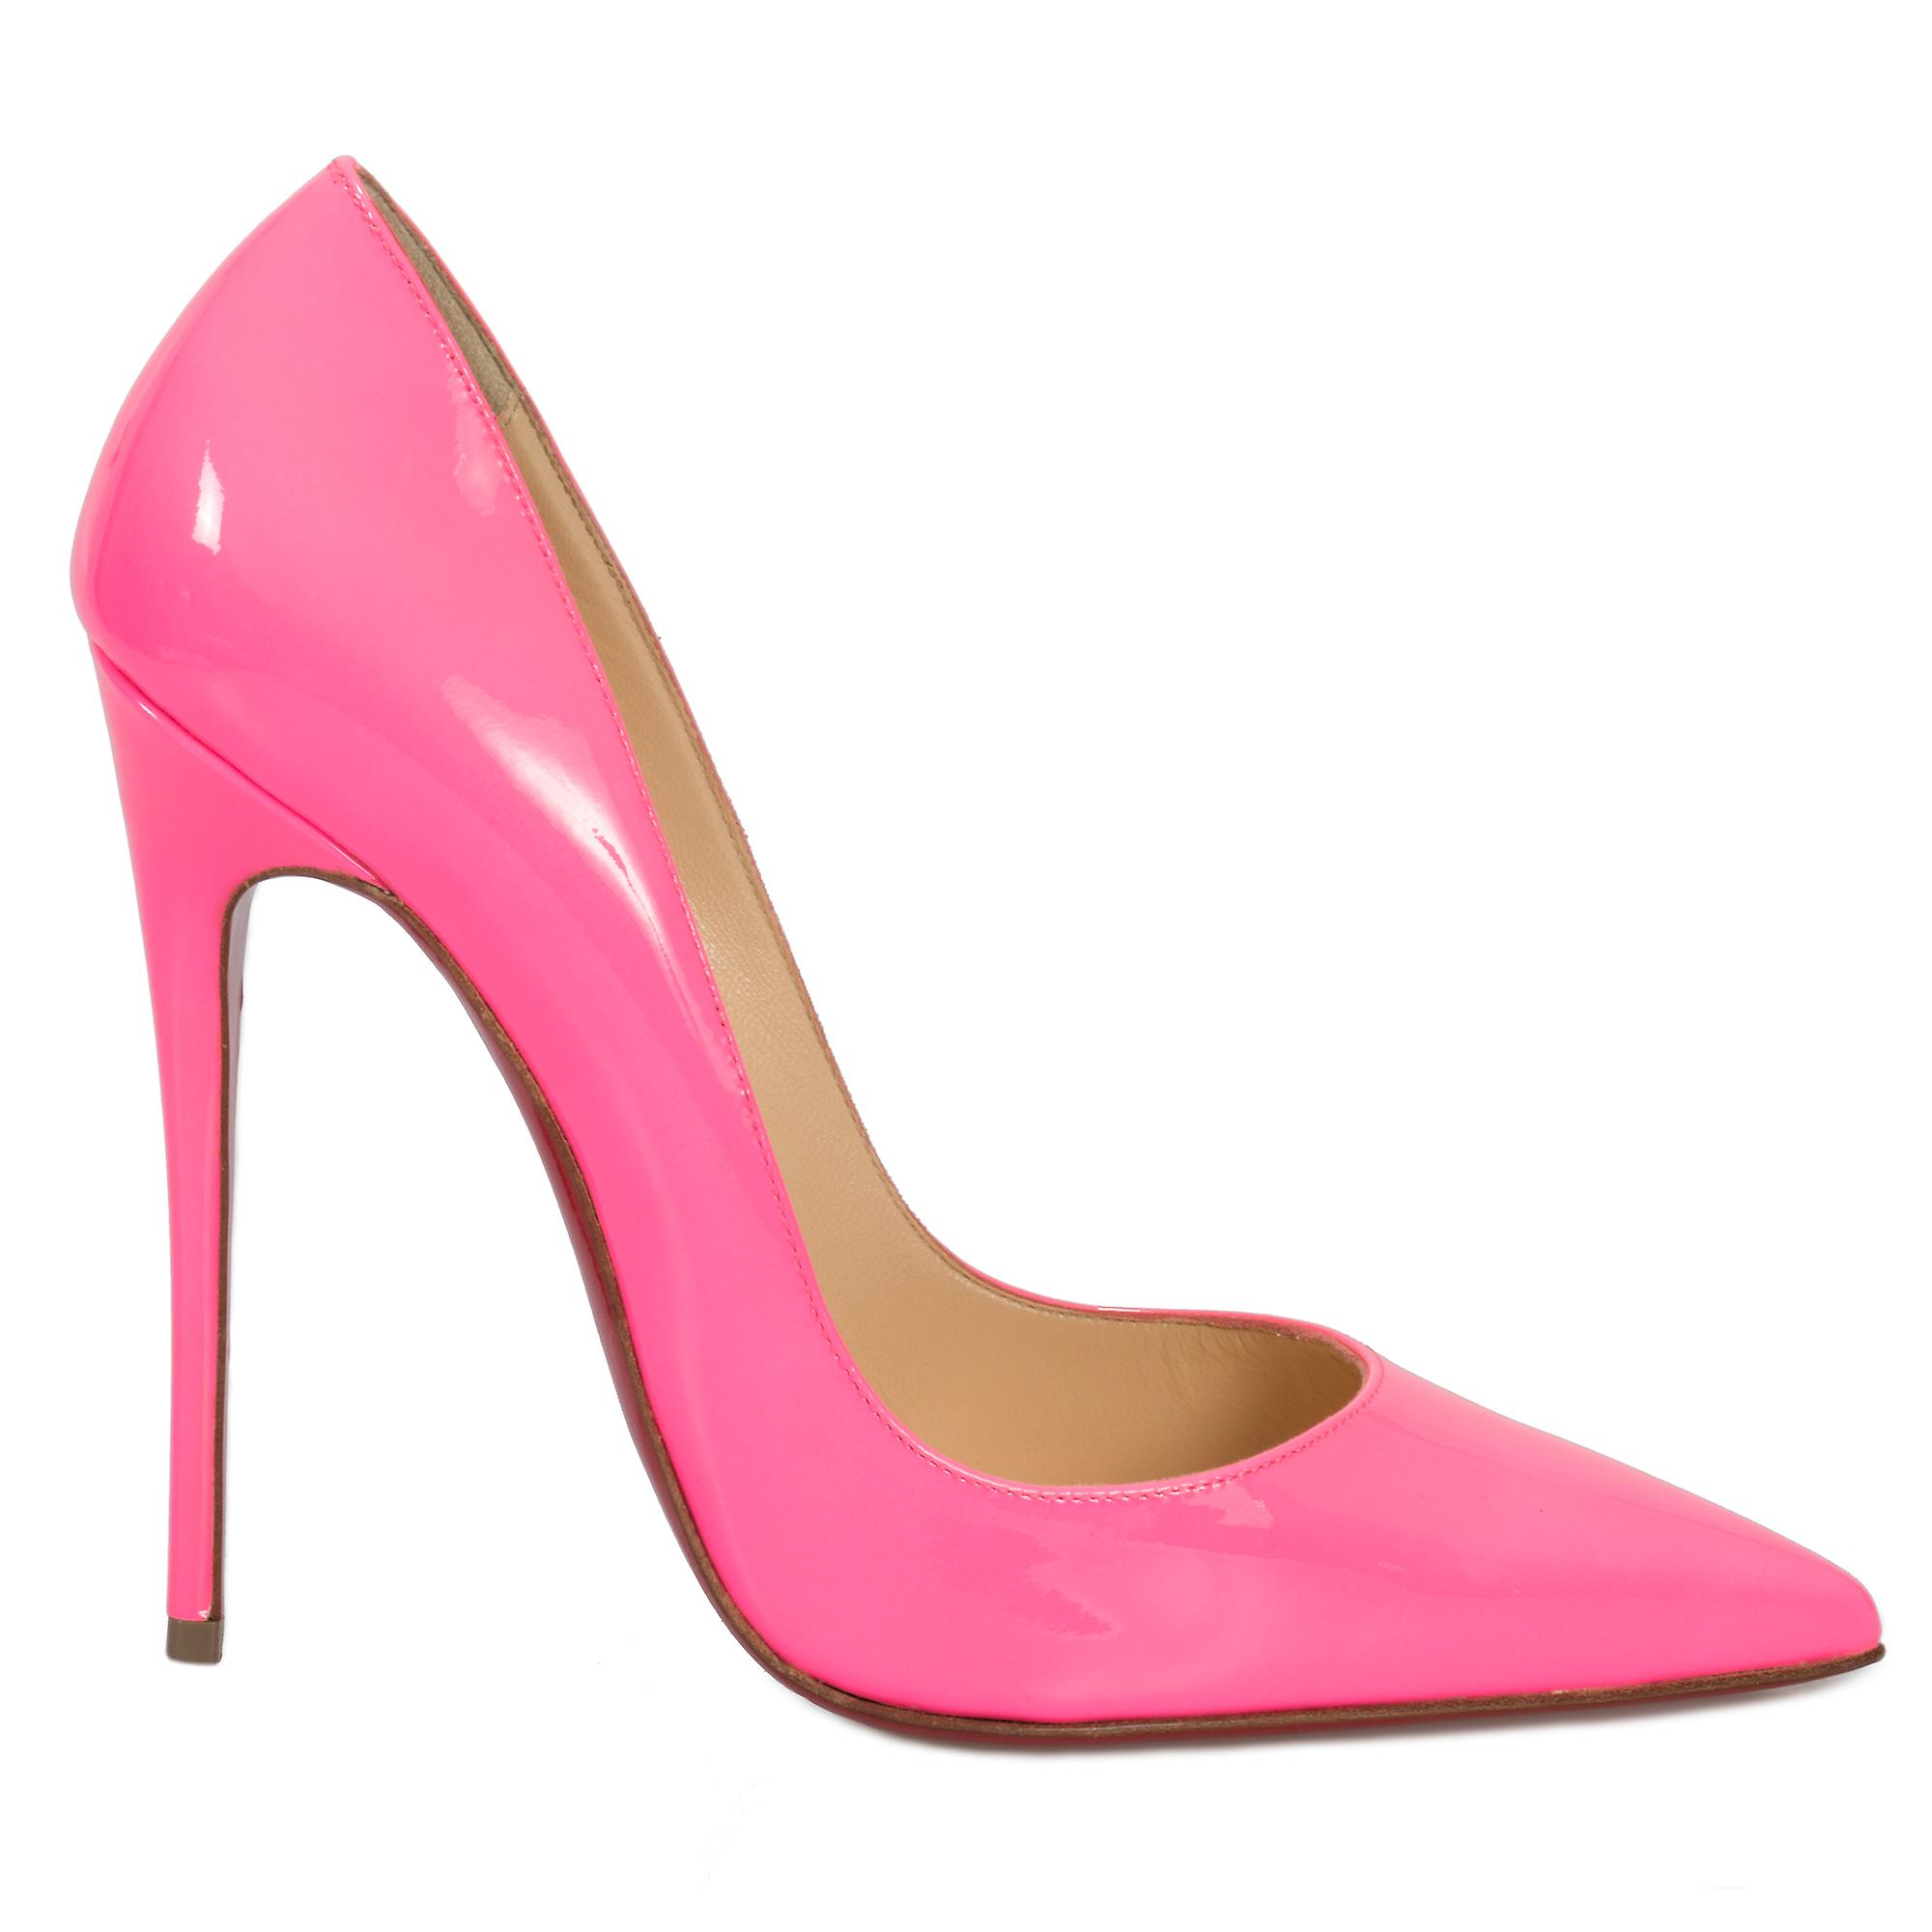 on sale 27a4d fde24 Christian Louboutin So Kate Fuchsia Patent Leather 100mm Pumps